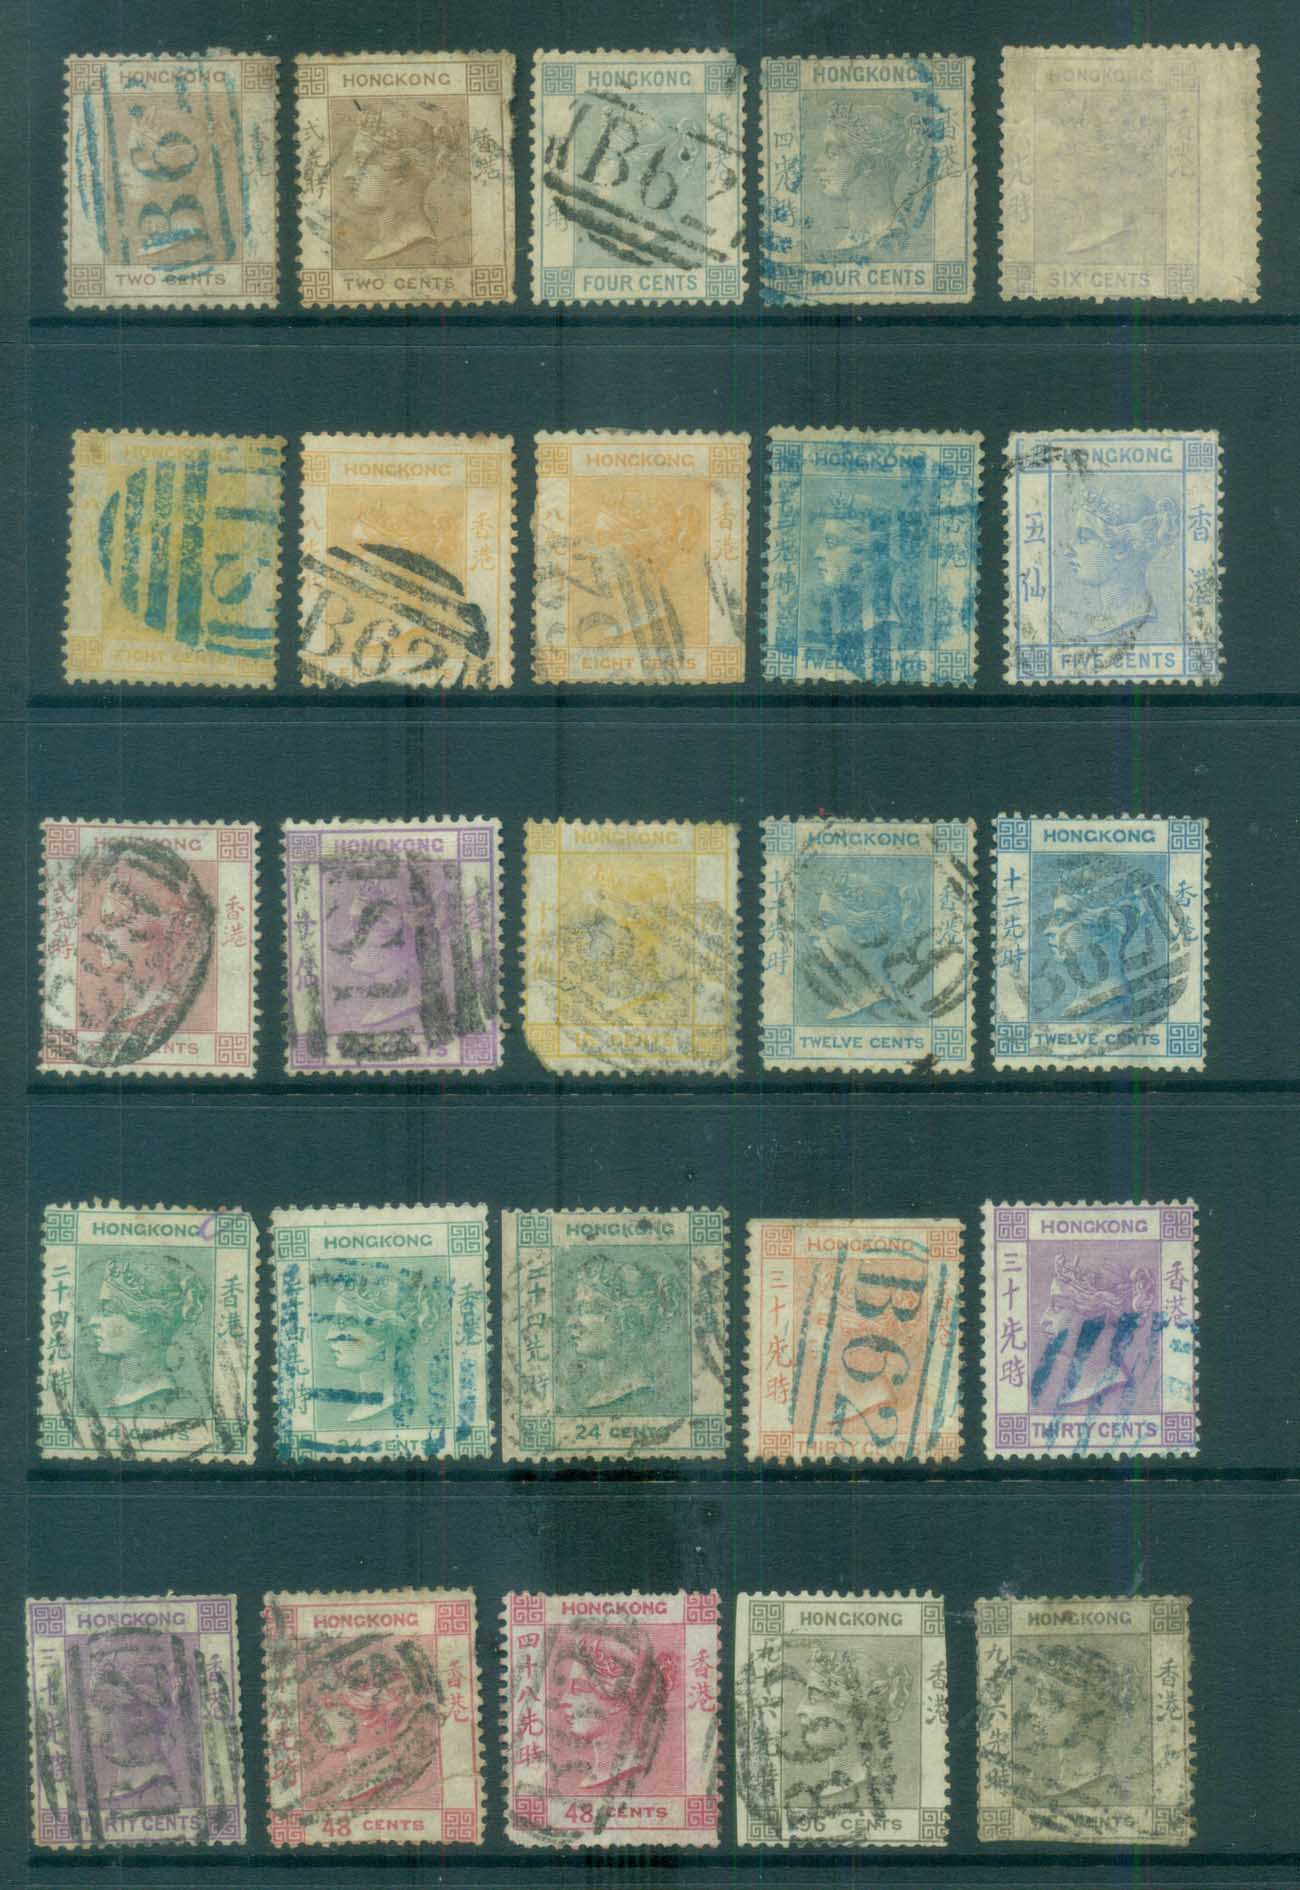 Hong Kong 1863-80 QV Assorted, faults/spacefillers Wmk Crown CC FU lot78107